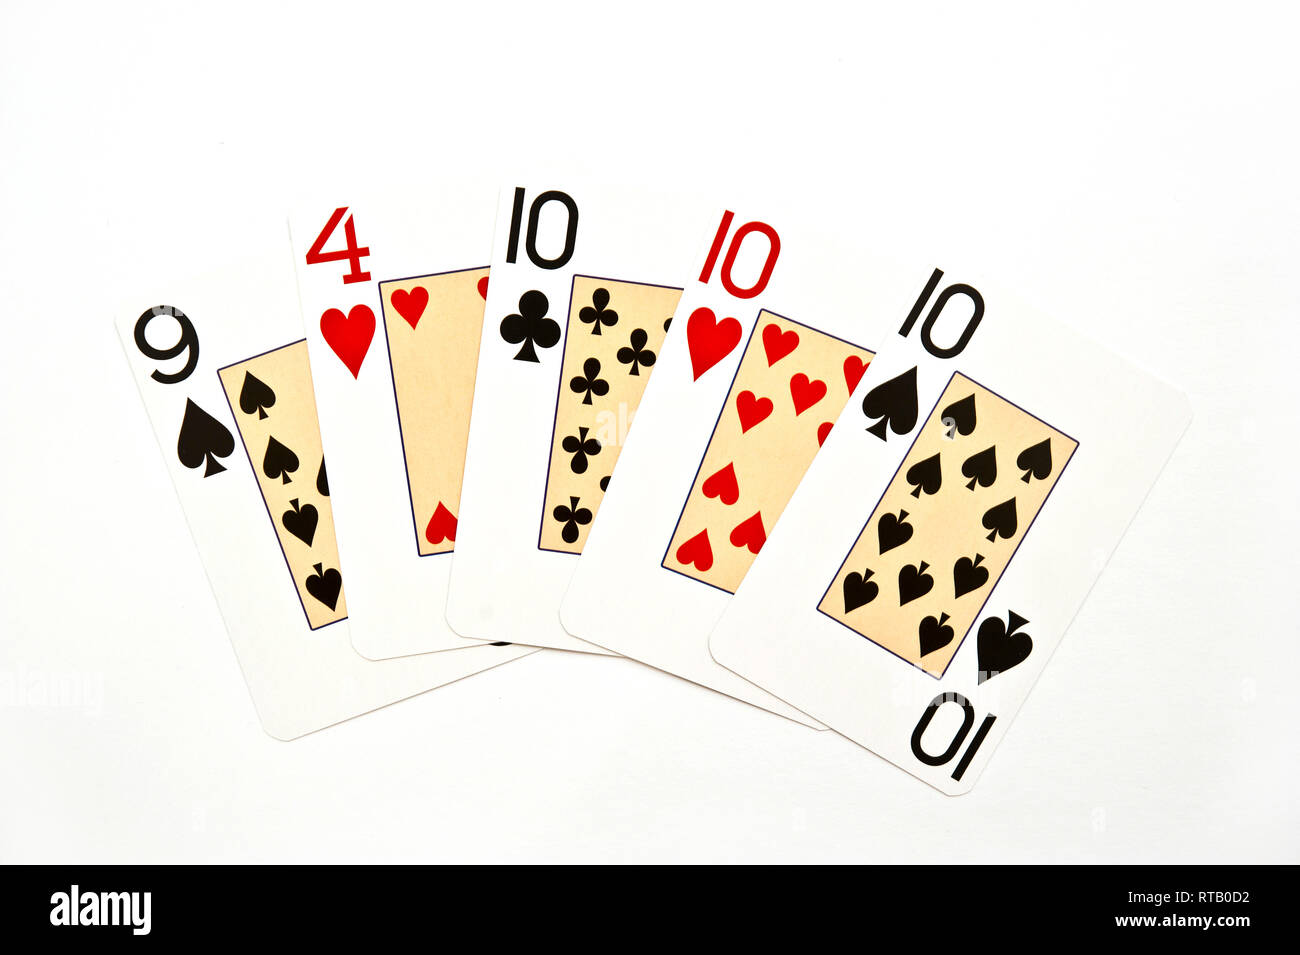 poker hand Three of a Kind - Stock Image